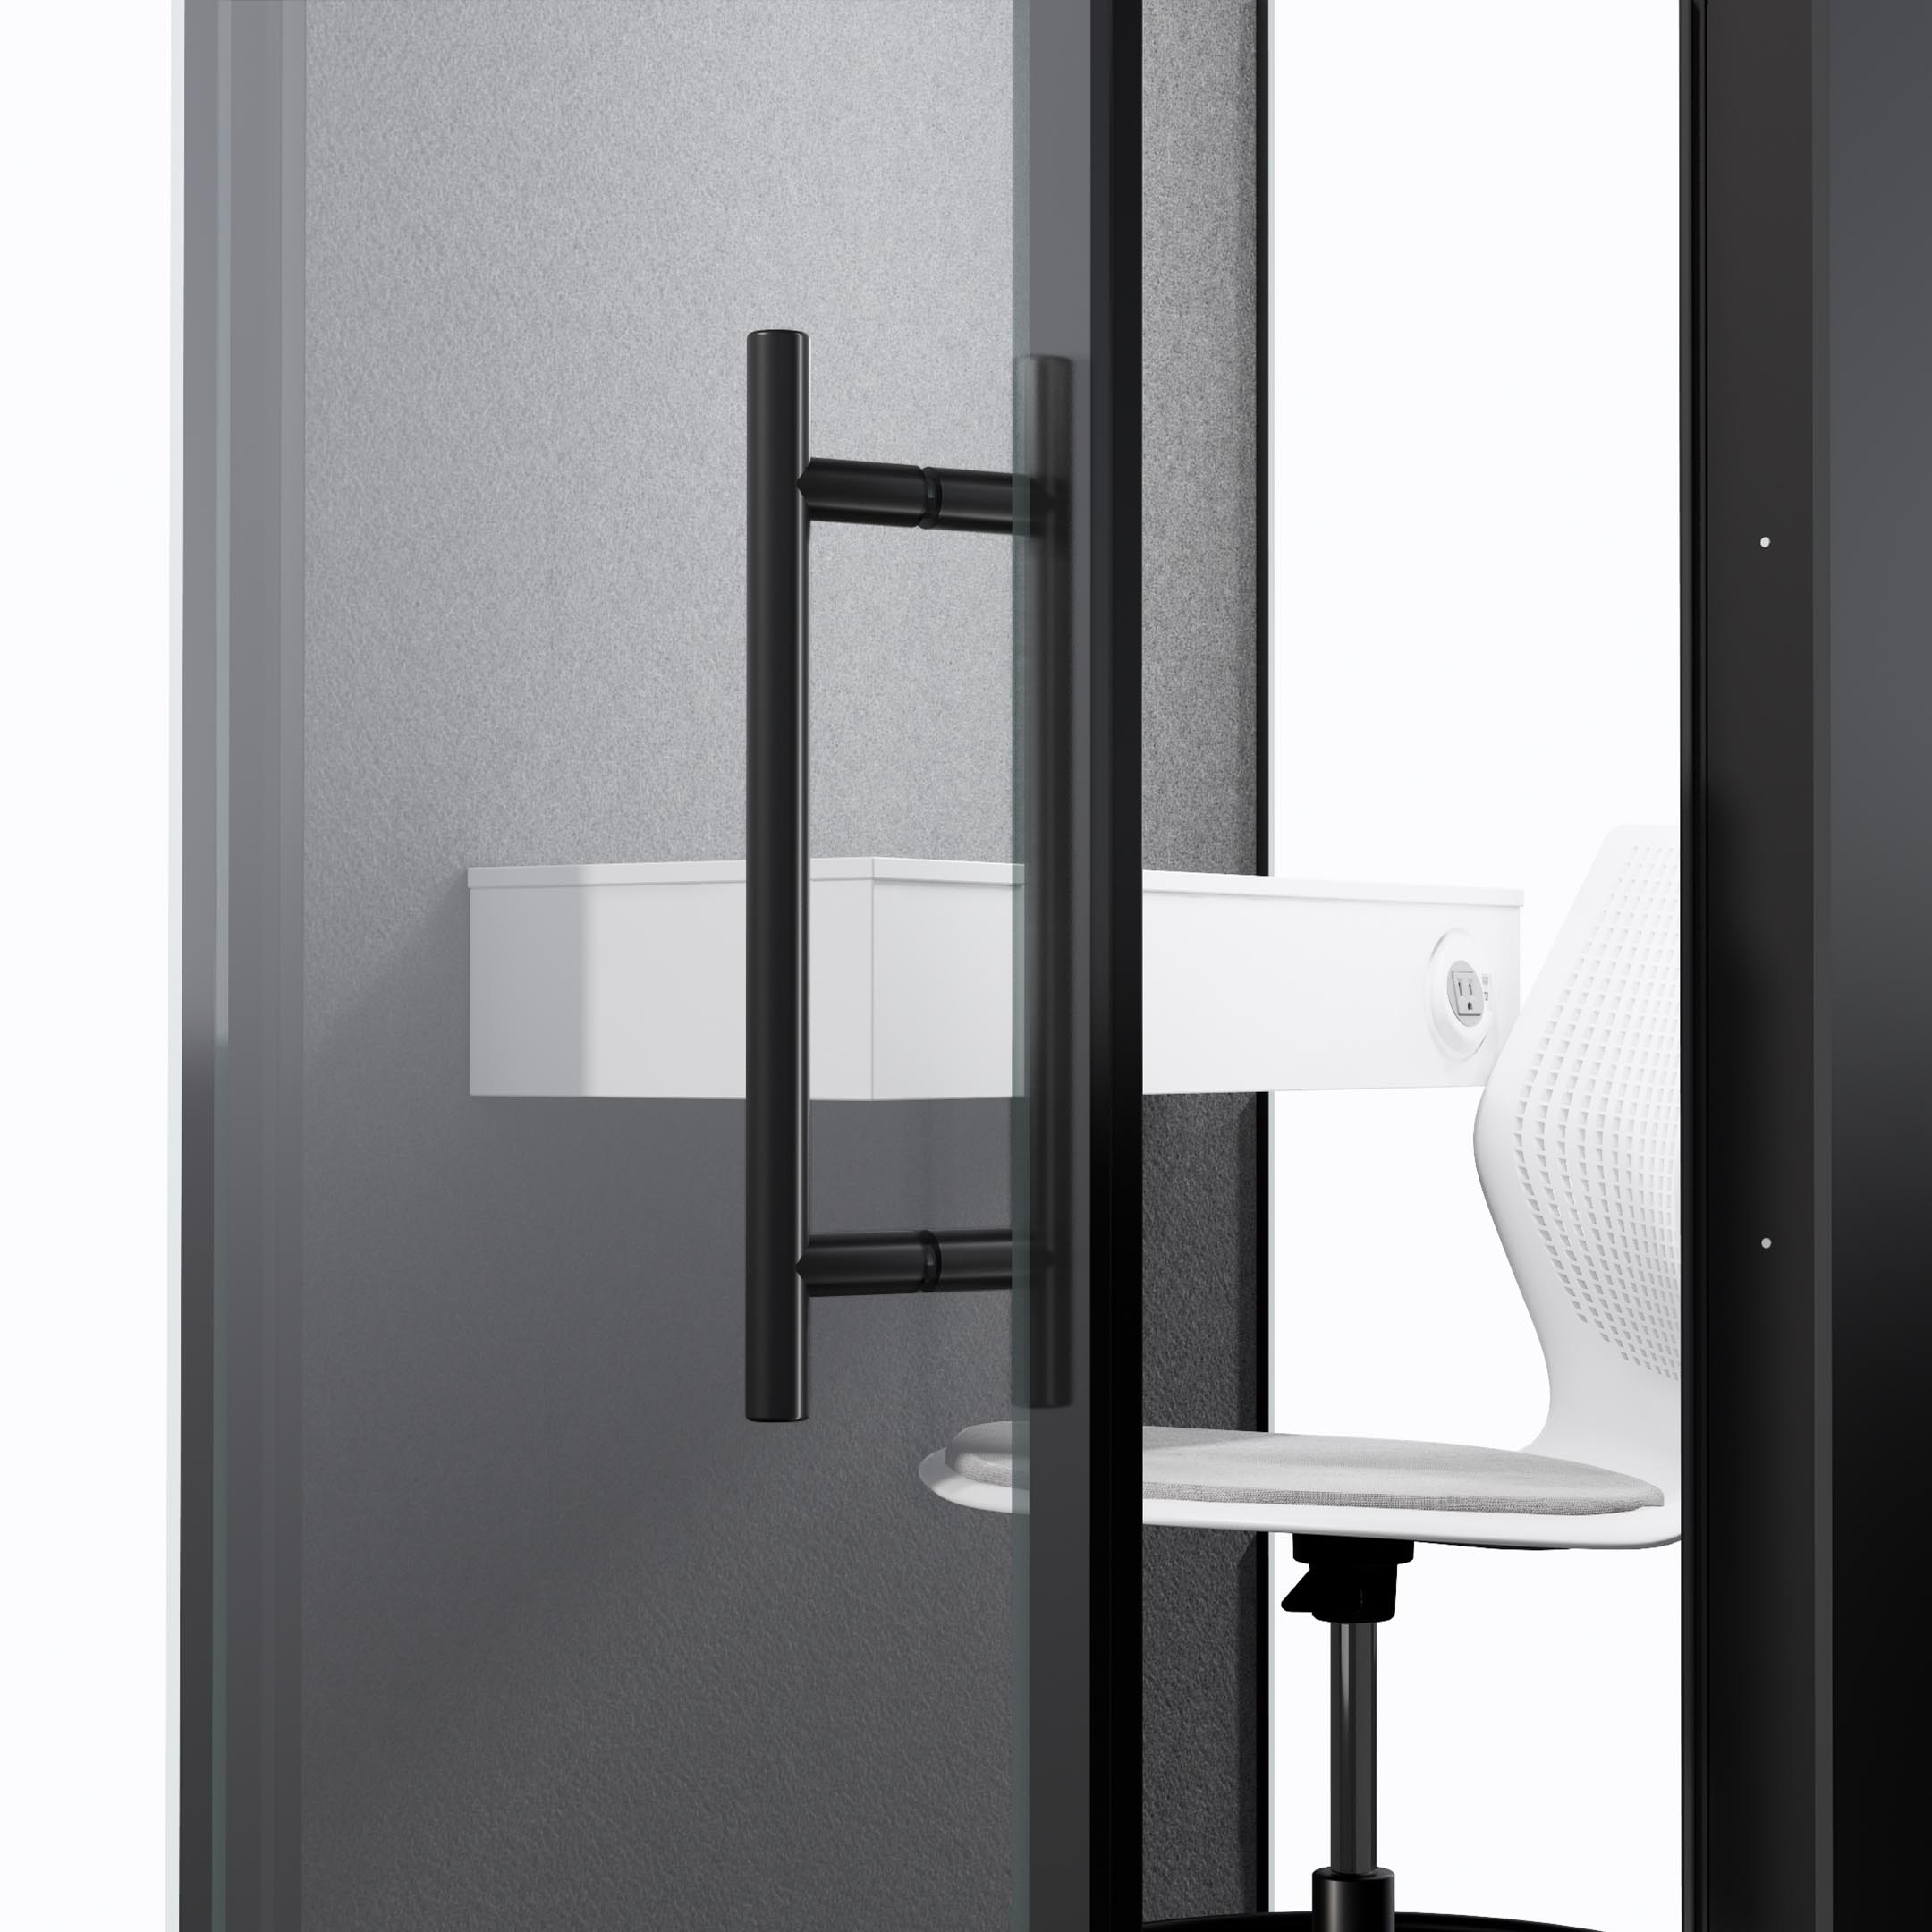 CHATBOX SINGLE-DOOR HANDLE AND TABLE